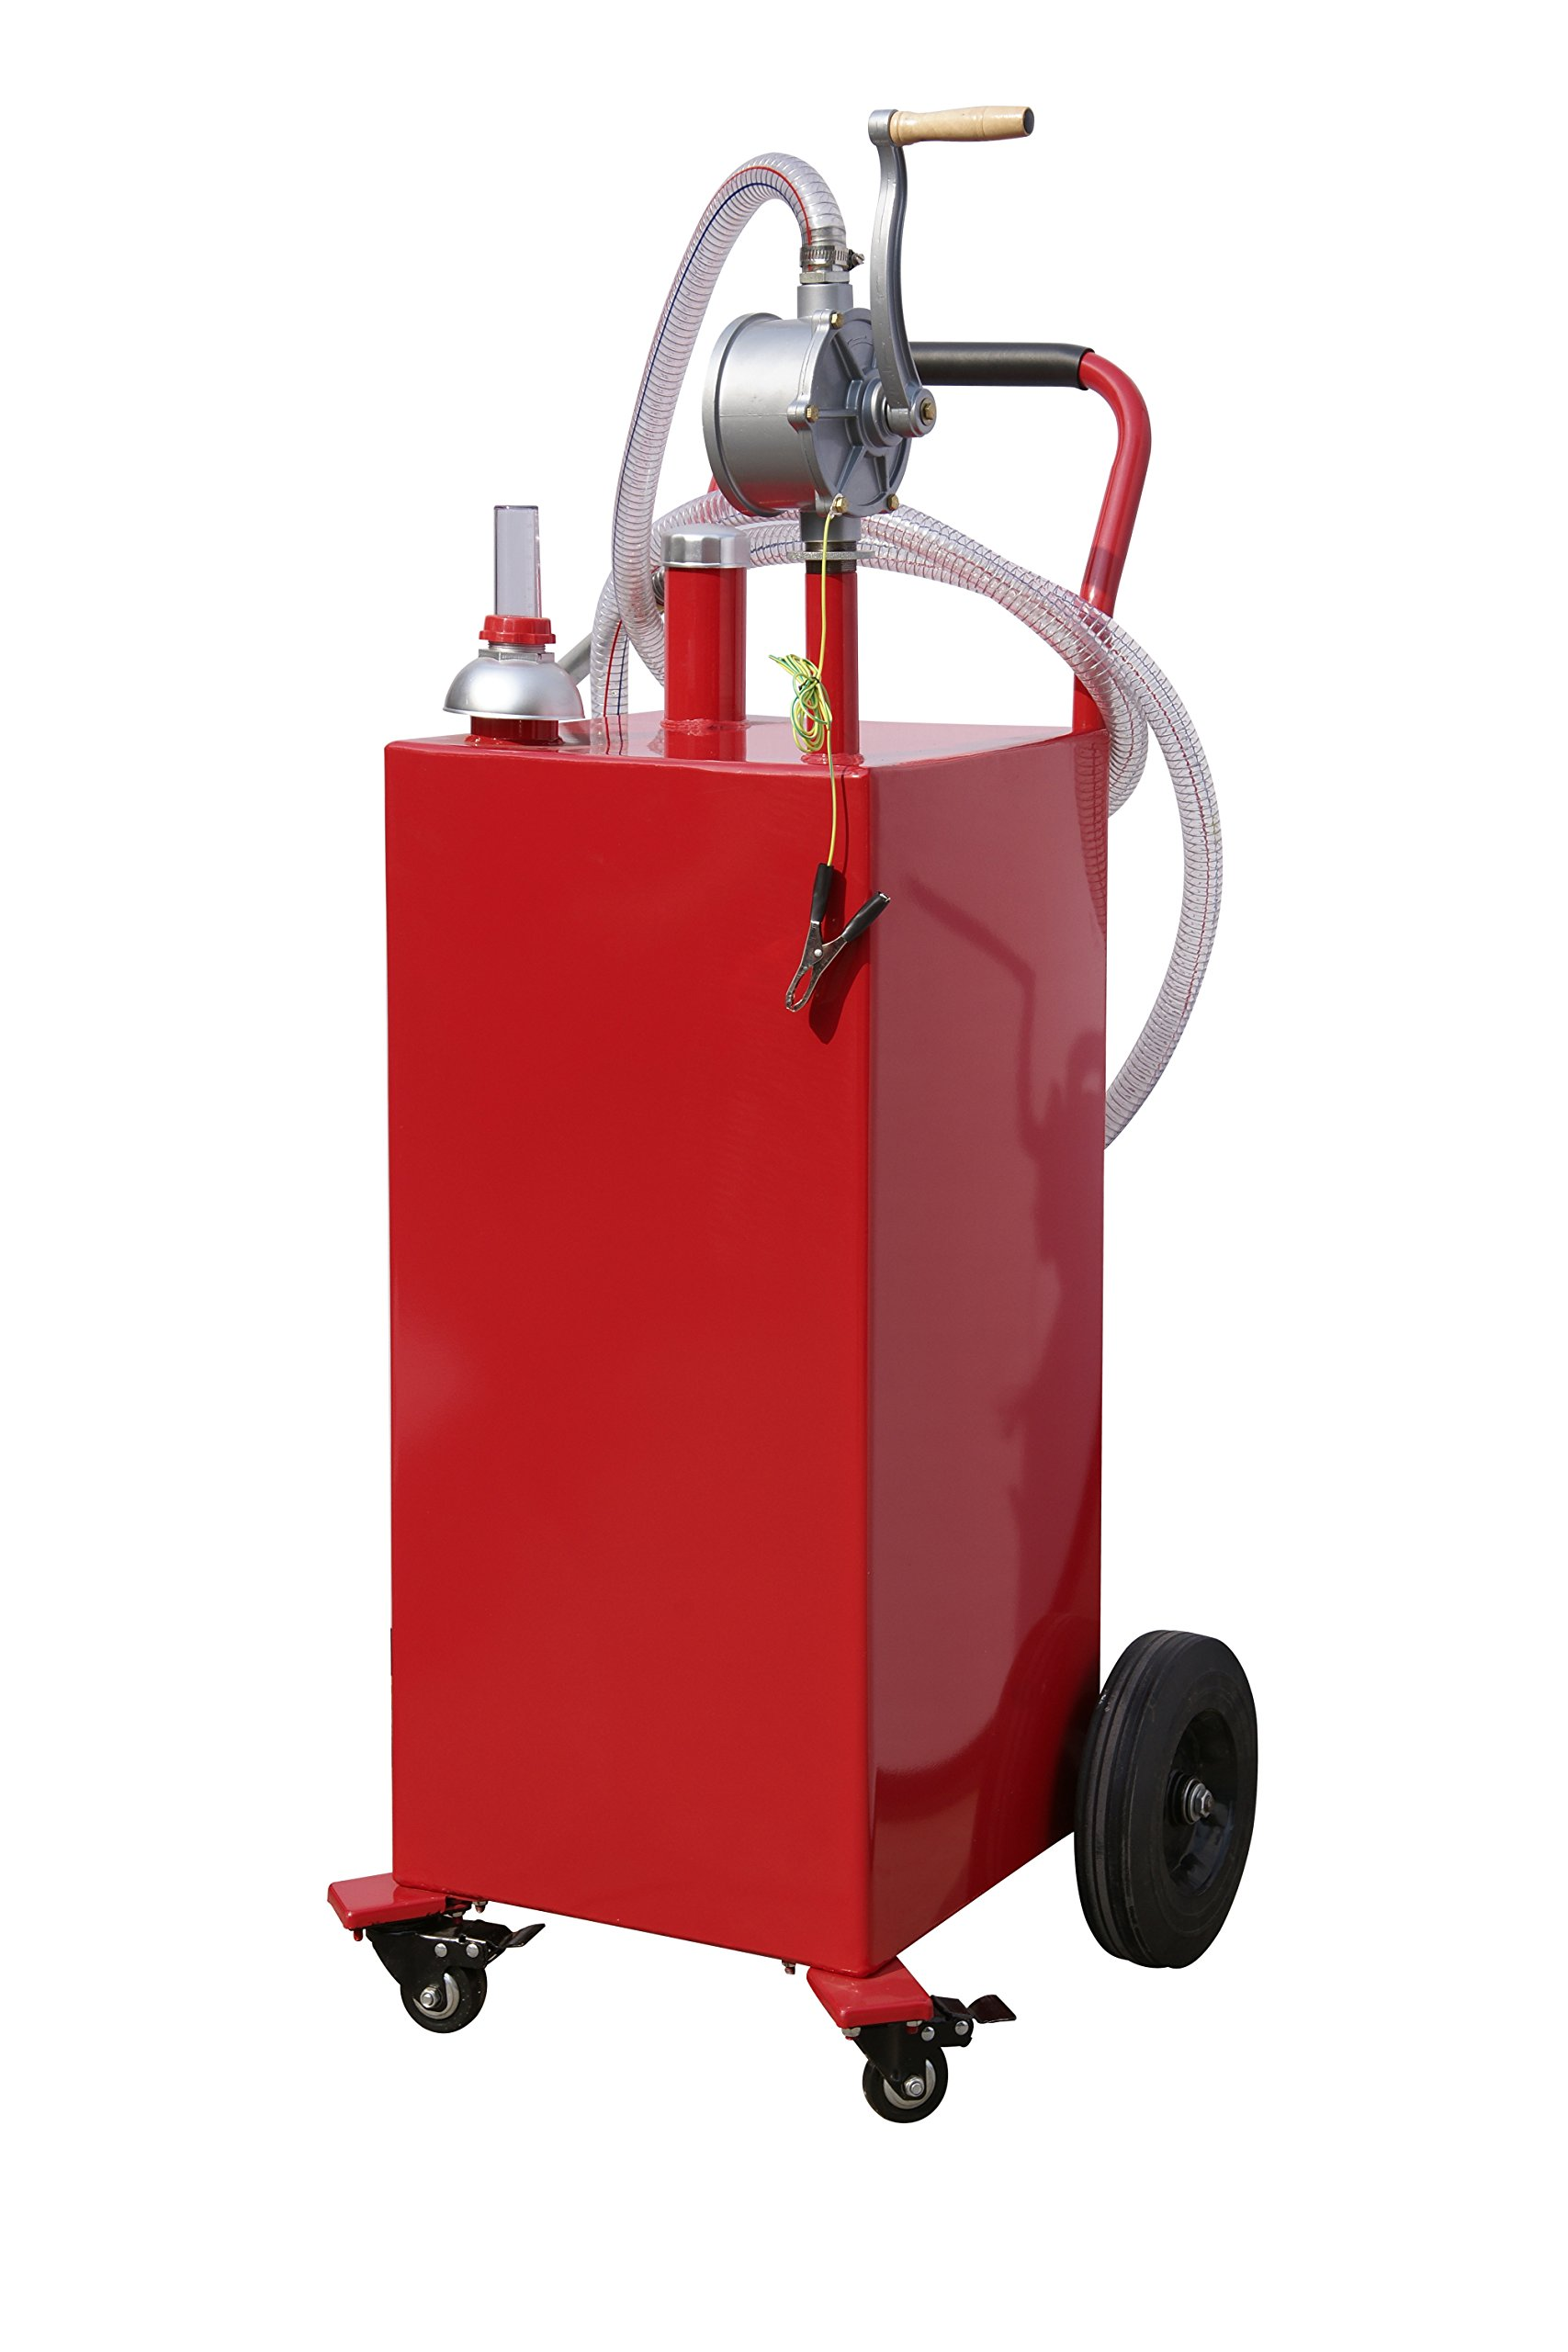 Arksen 35-Gallon Gas Caddy Fuel Tank Portable Storage Transfer Gasoline with Pump 35-Gallons Capacity, Red